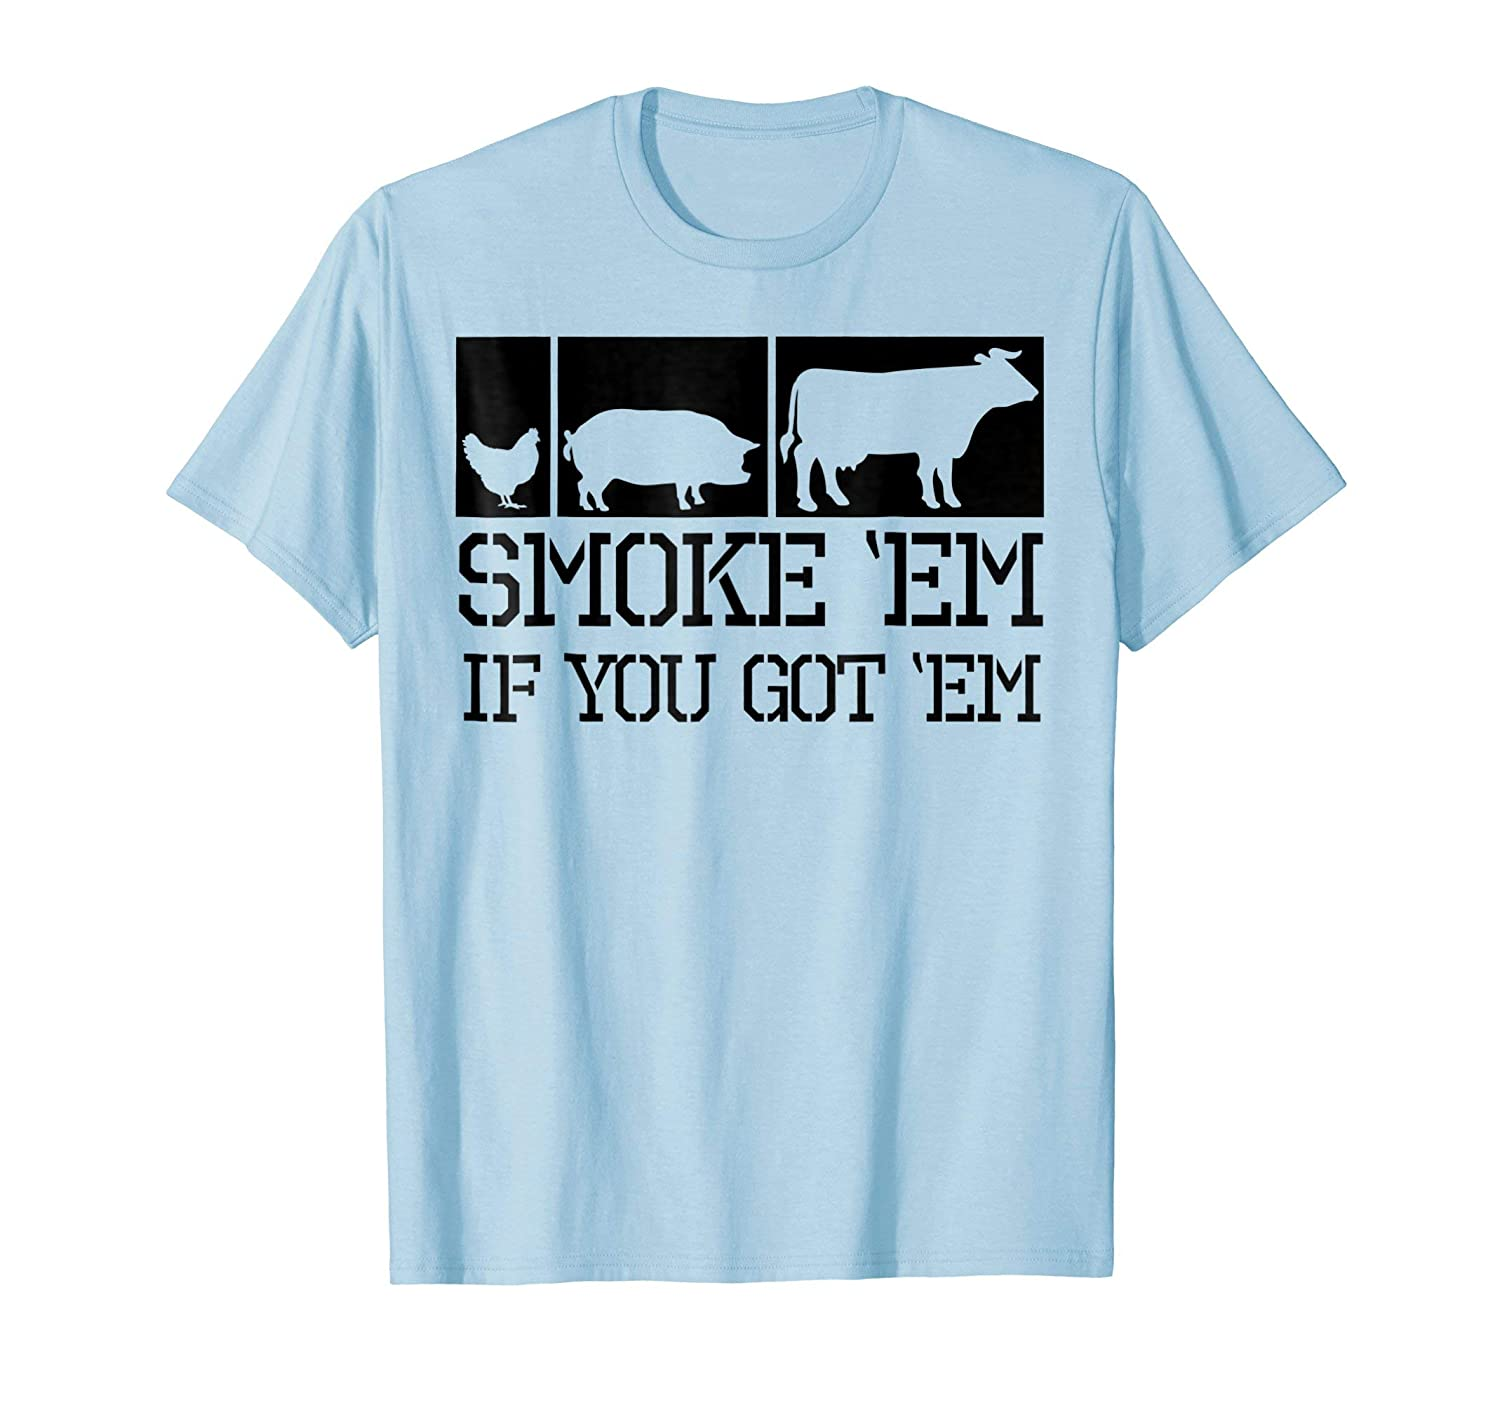 c1c5ba4e ... 10% Polyester; All Other Heathers: 50% Cotton, 50% Polyester Imported  Machine wash cold with like colors, dry low heat. Smoke em if you got em tee  for ...